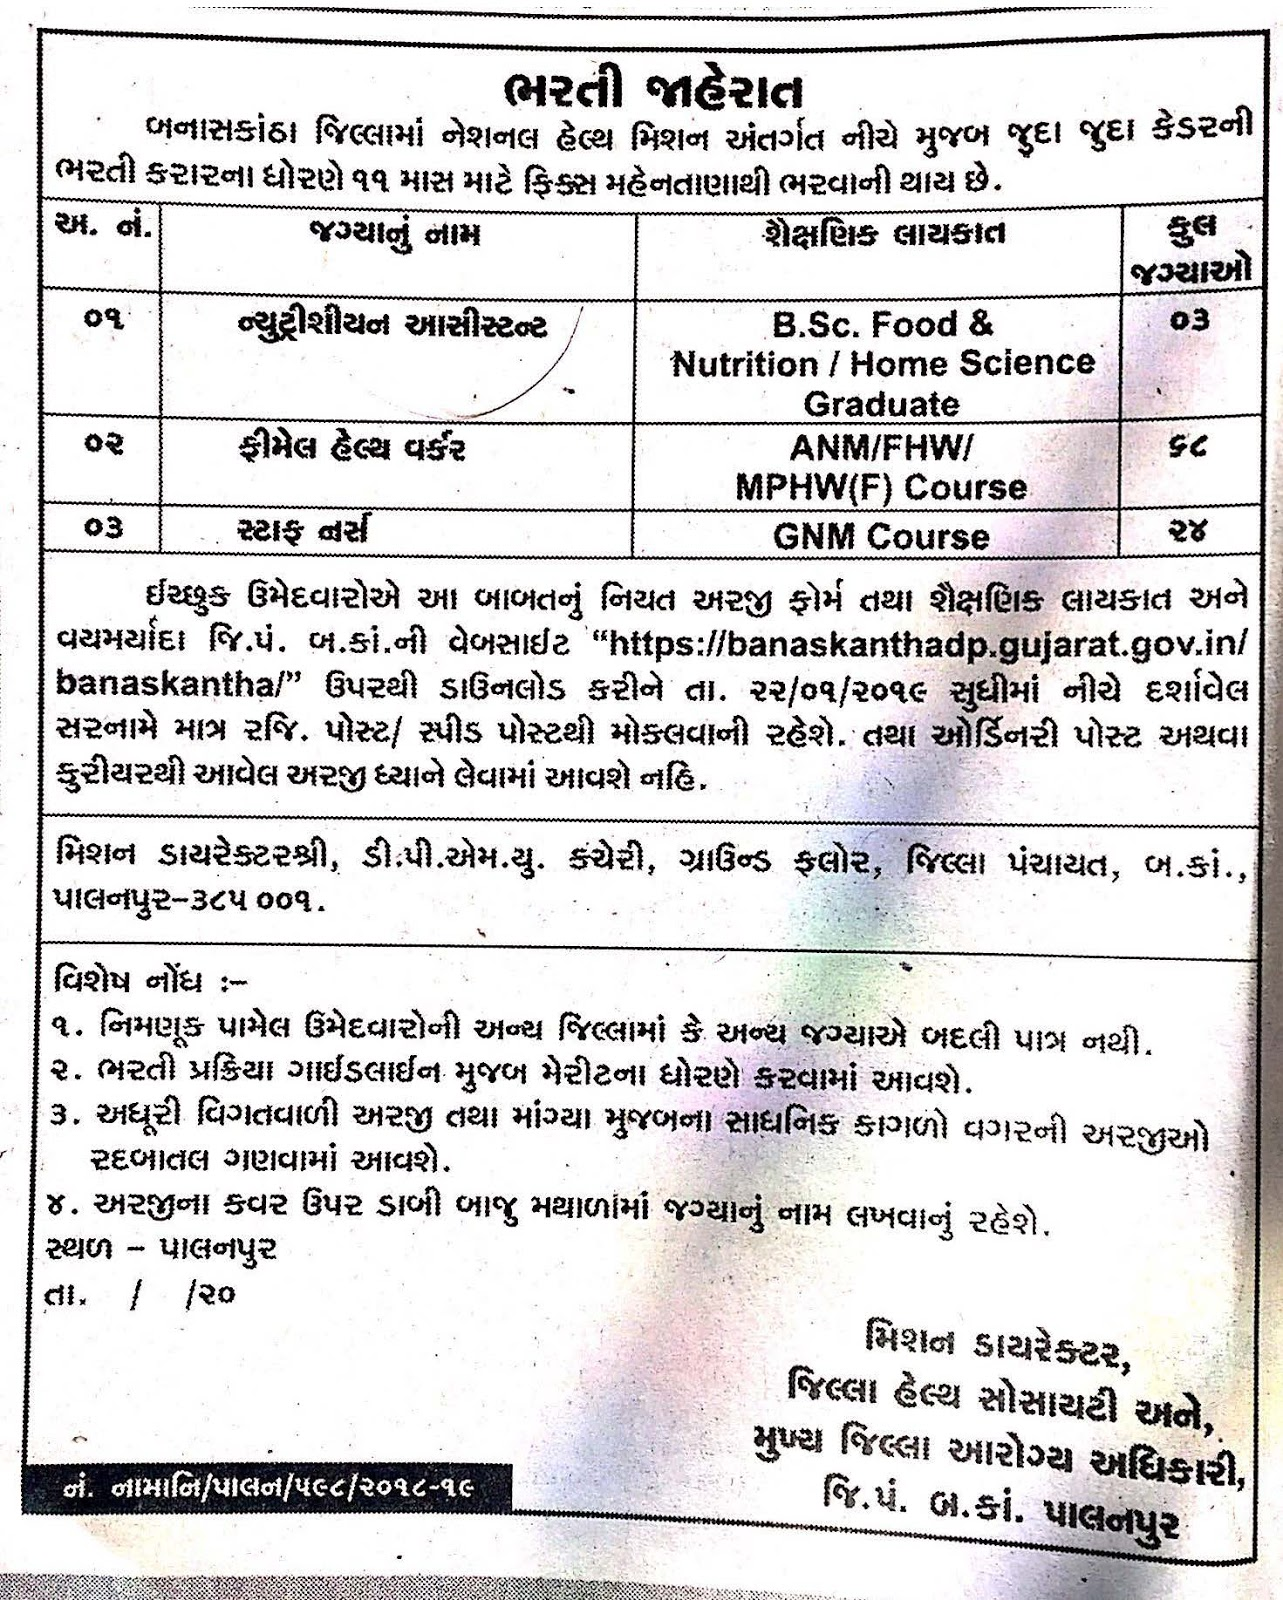 National Health Mission, Banaskantha Recruitment for Various Posts